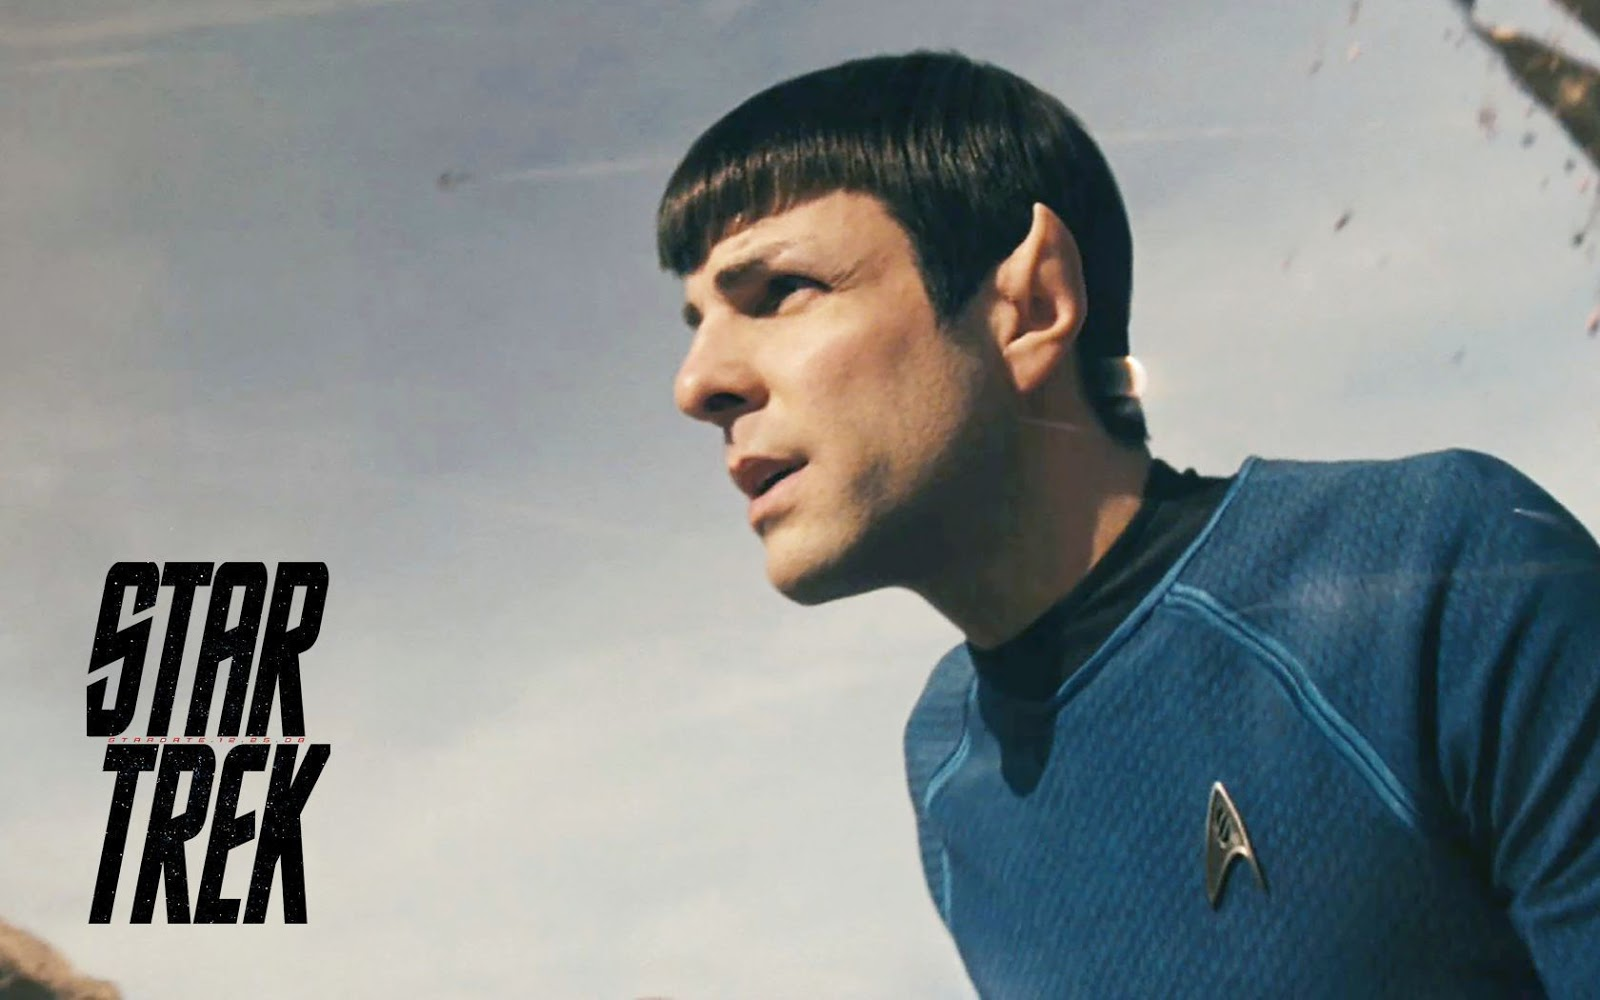 Spock-from-Zachary-Quinto-zachary-quinto-8880436-1680-1050.jpg